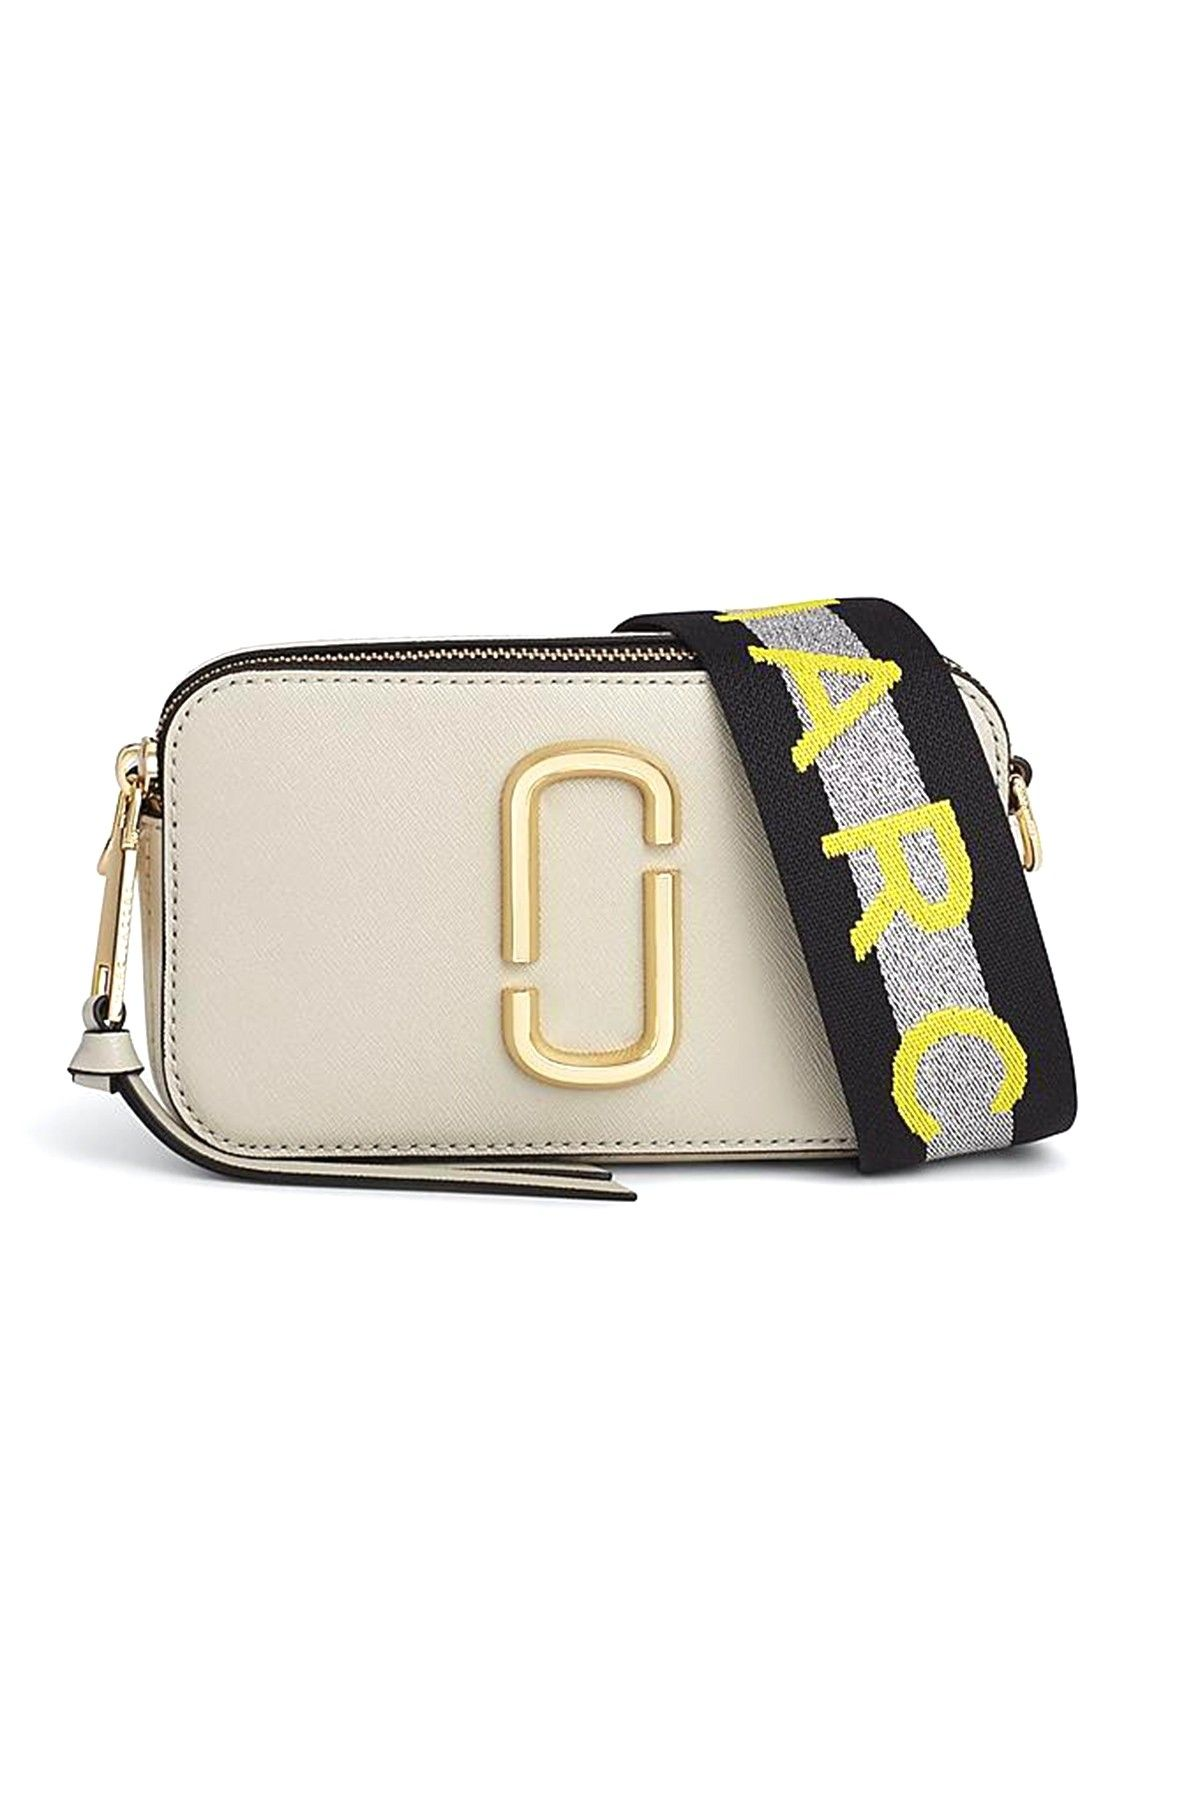 Marc Jacobs Snapshot Bag in Dust Multi   Hampden Bags in 2019   Bags ... 3d862a950f